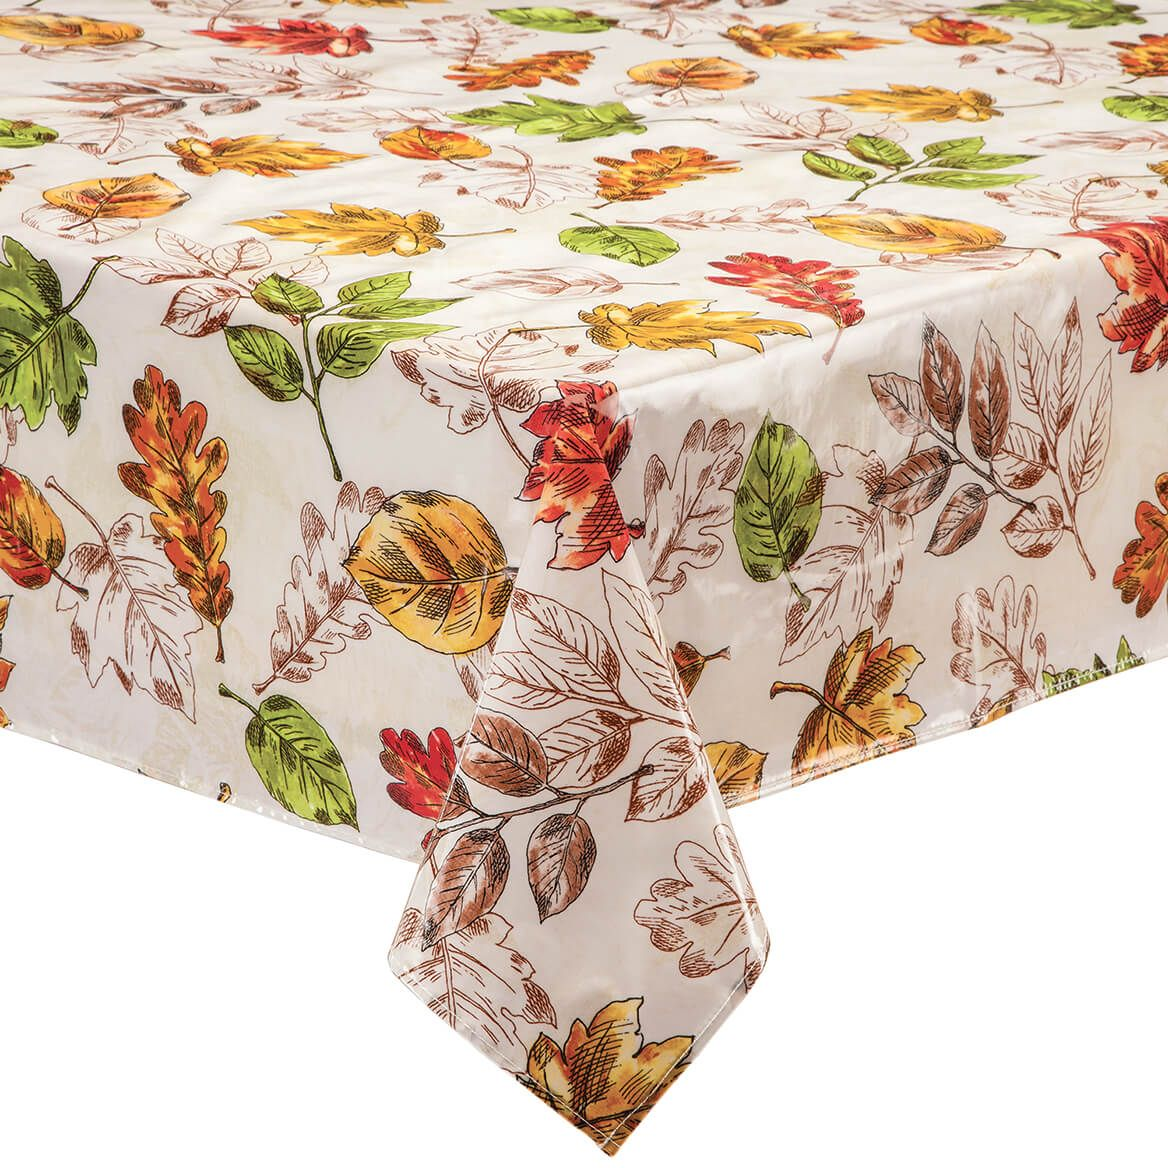 Pressed Leaves Oilcloth Tablecloth-368074